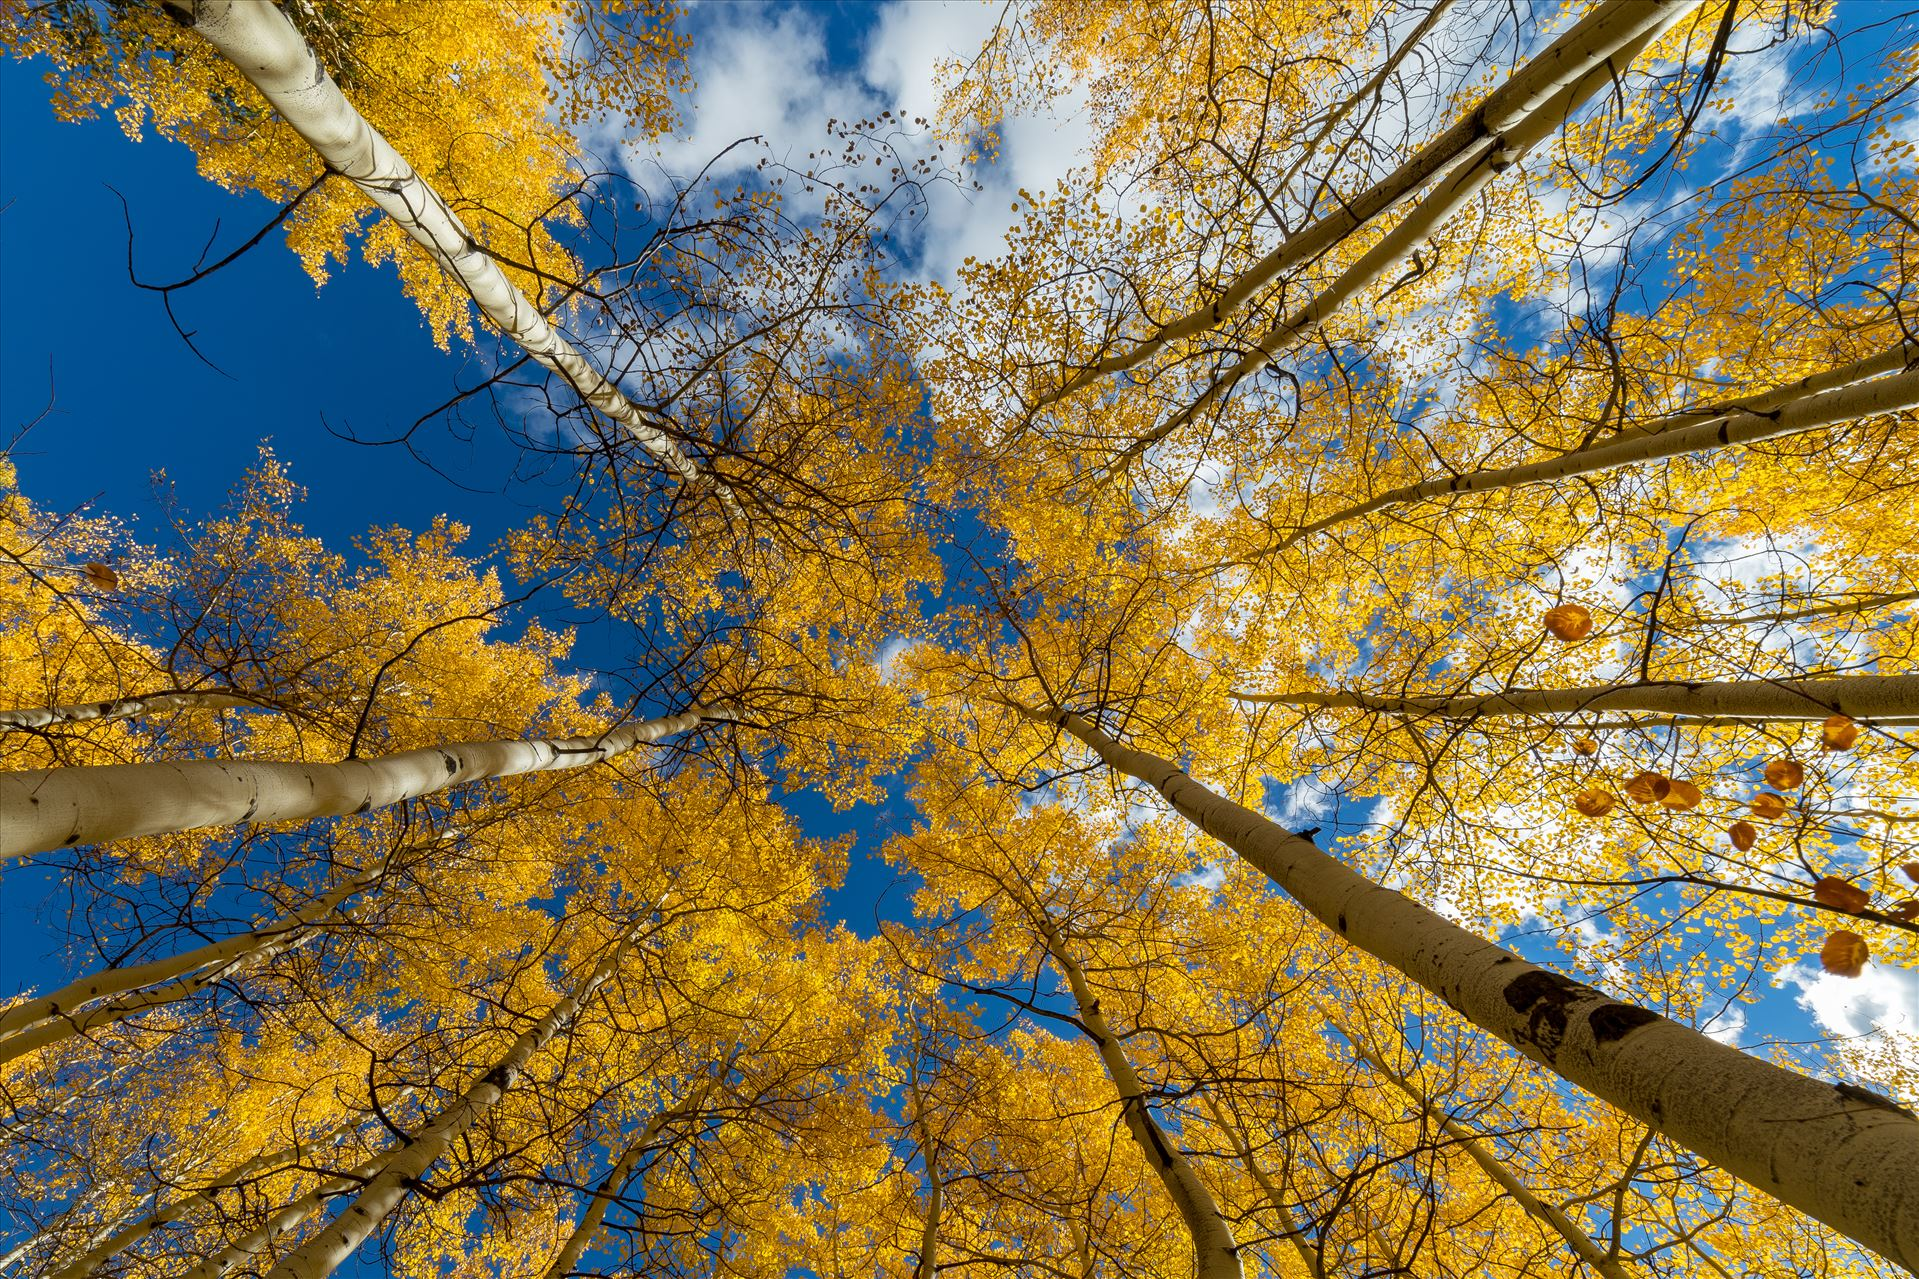 Aspens to the Sky No 3 - Aspens reaching skyward in Fall. Taken near Maroon Creek Drive near Aspen, Colorado. by D Scott Smith